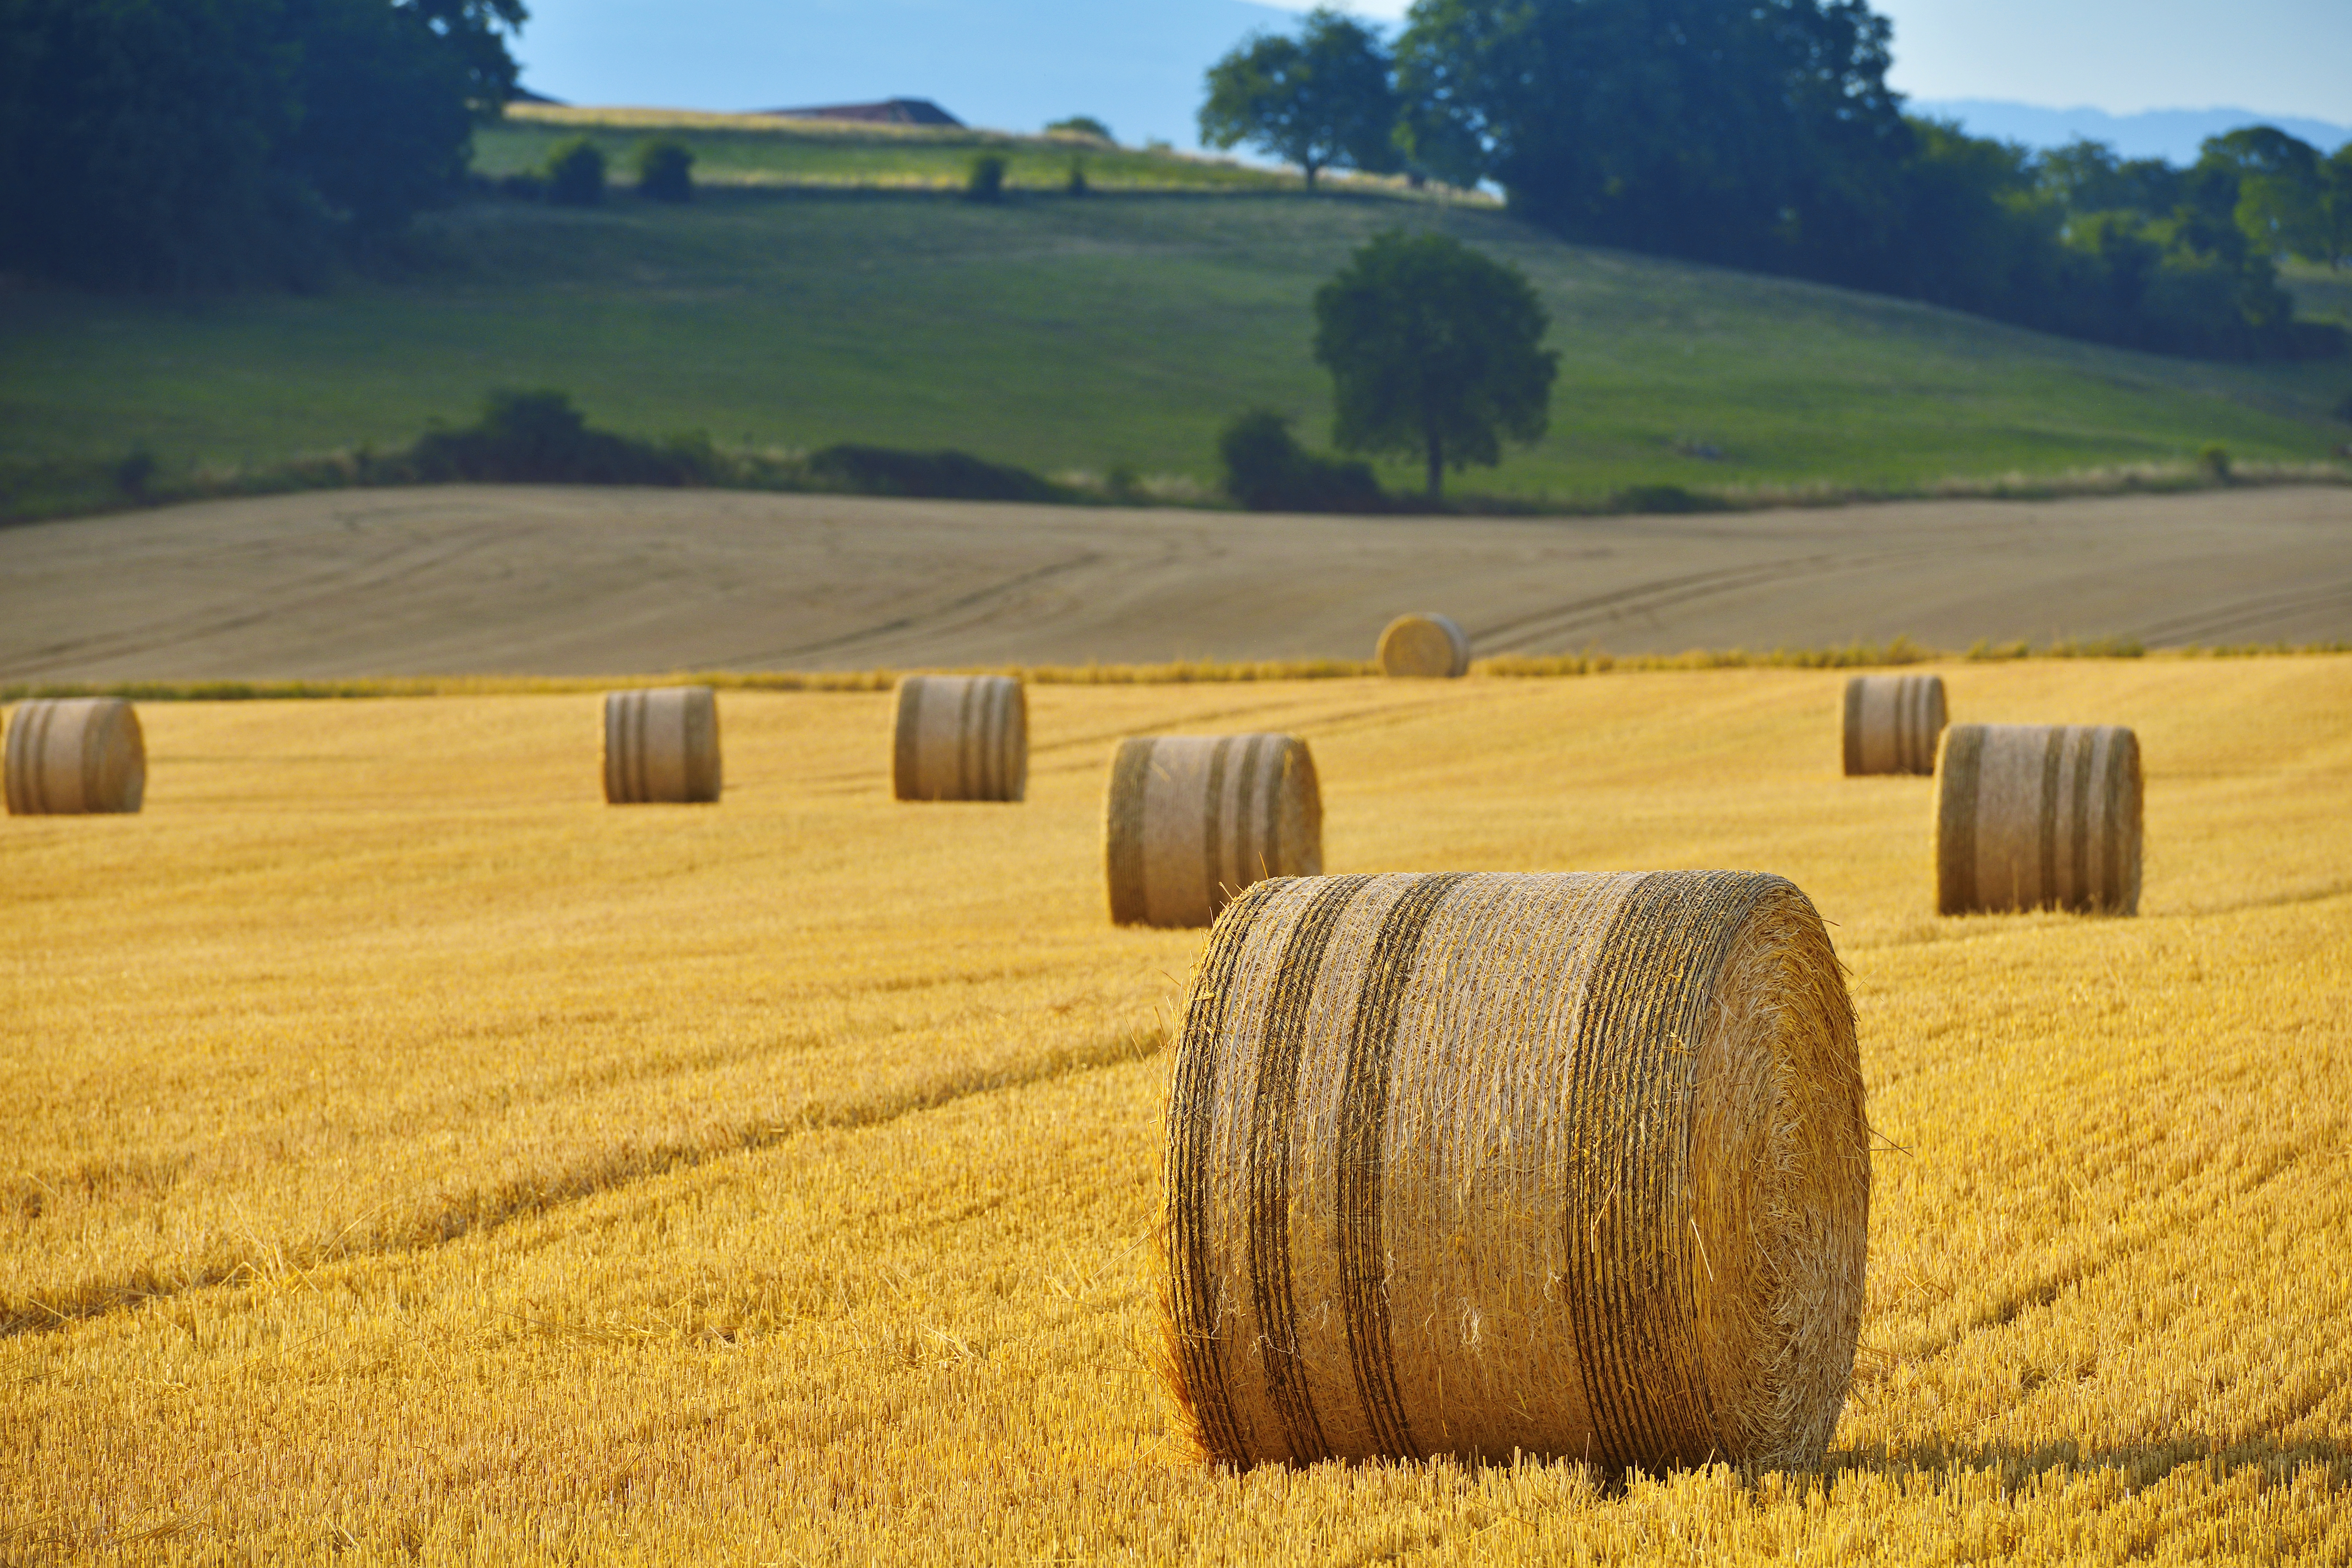 How to Start a Hay Farming Business | Career Trend